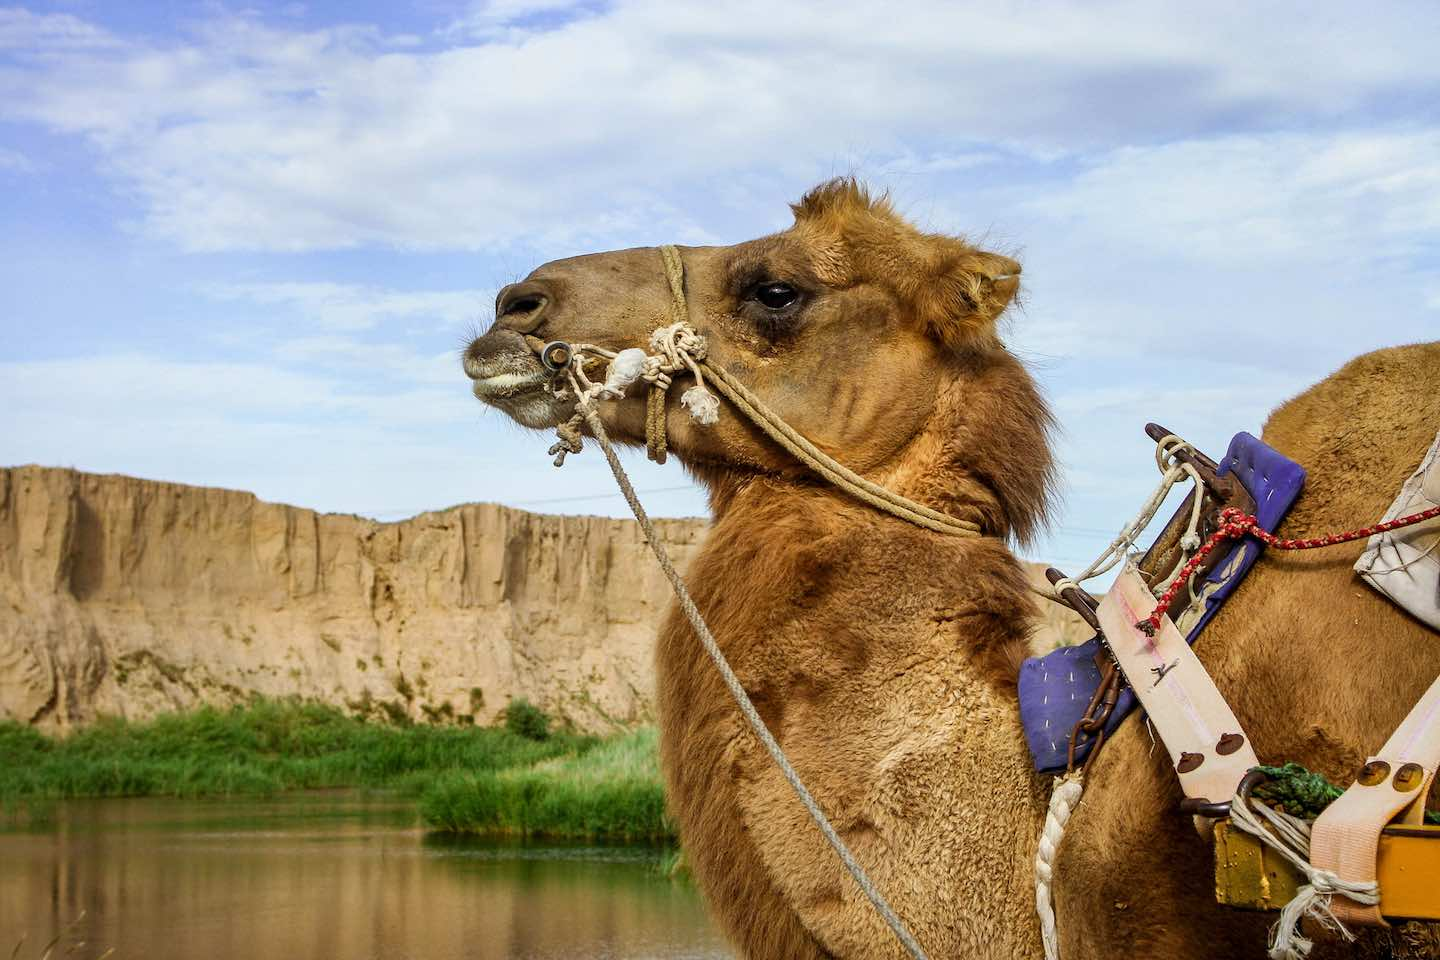 Camel at Shuidonggou Historic Site in Yinchuan | Image © ExpatAlli.com